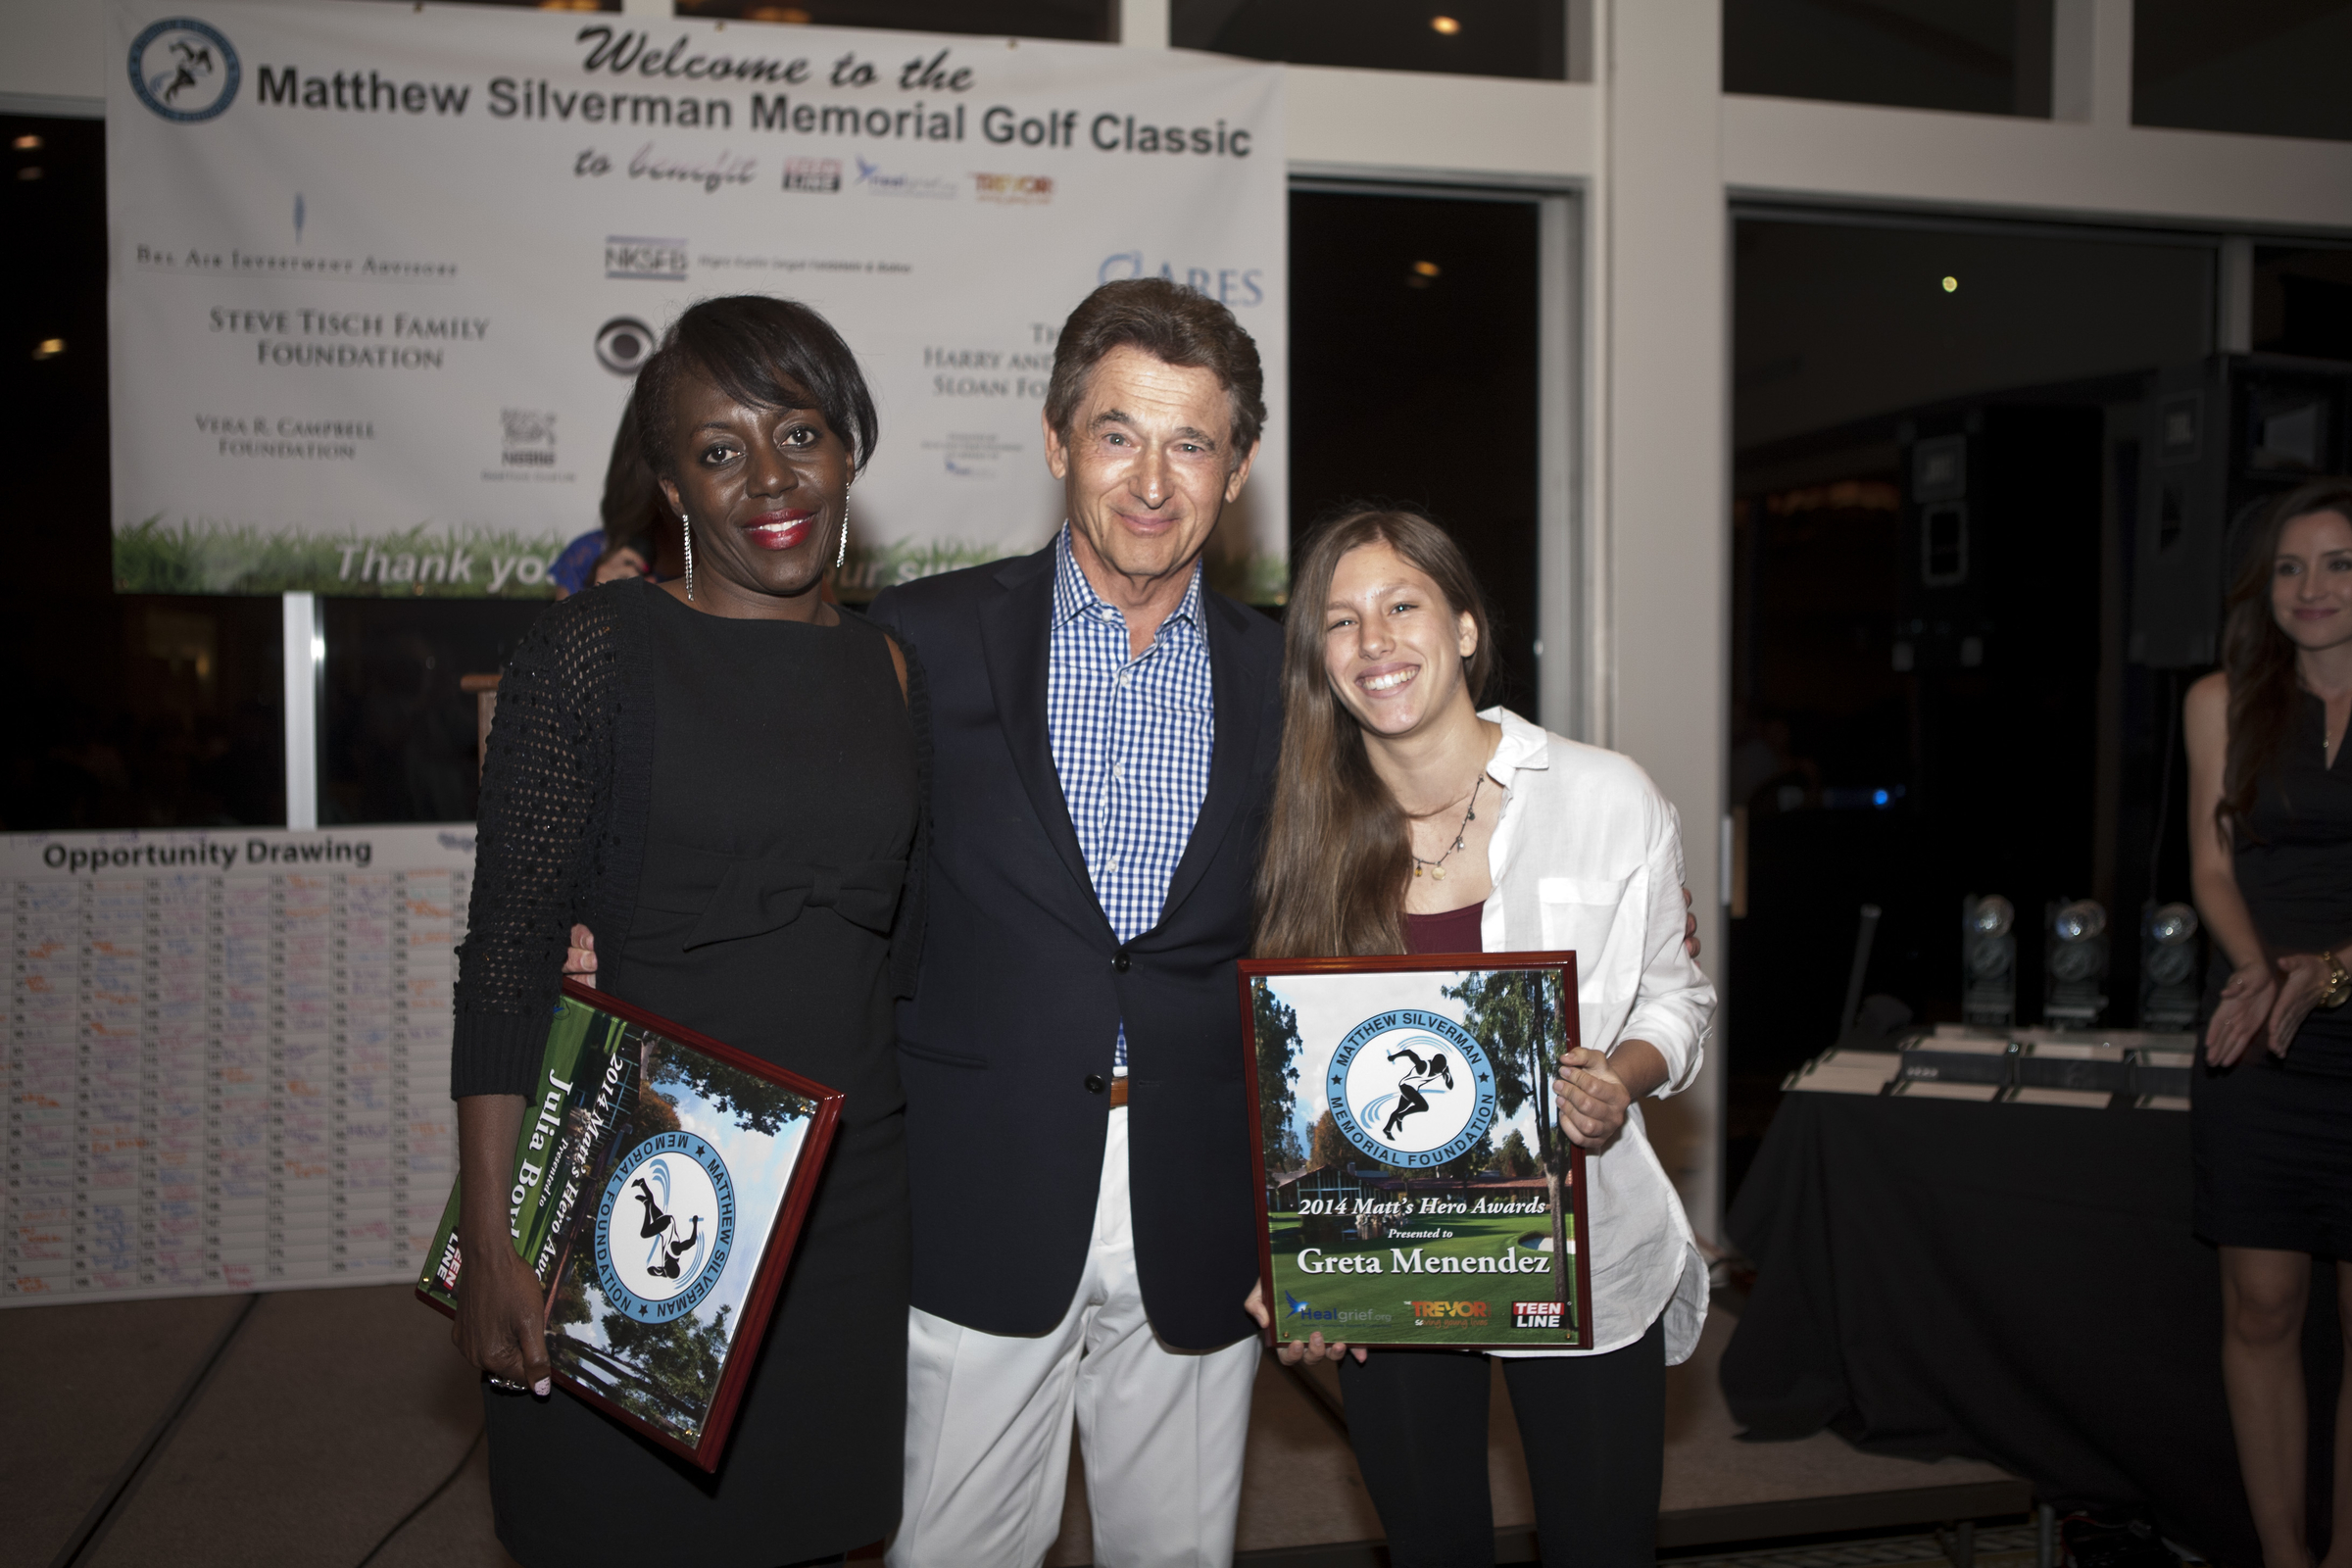 At the 2014 Matthew Silverman Memorial Golf TournamentonApril 21, we were delighted to  to announce  the first two recipients of this award, Ms.  Greta Melendez and M  rs. Julia  Bo  yle  . Thank you to Greta and  Julia  for all that you've done!